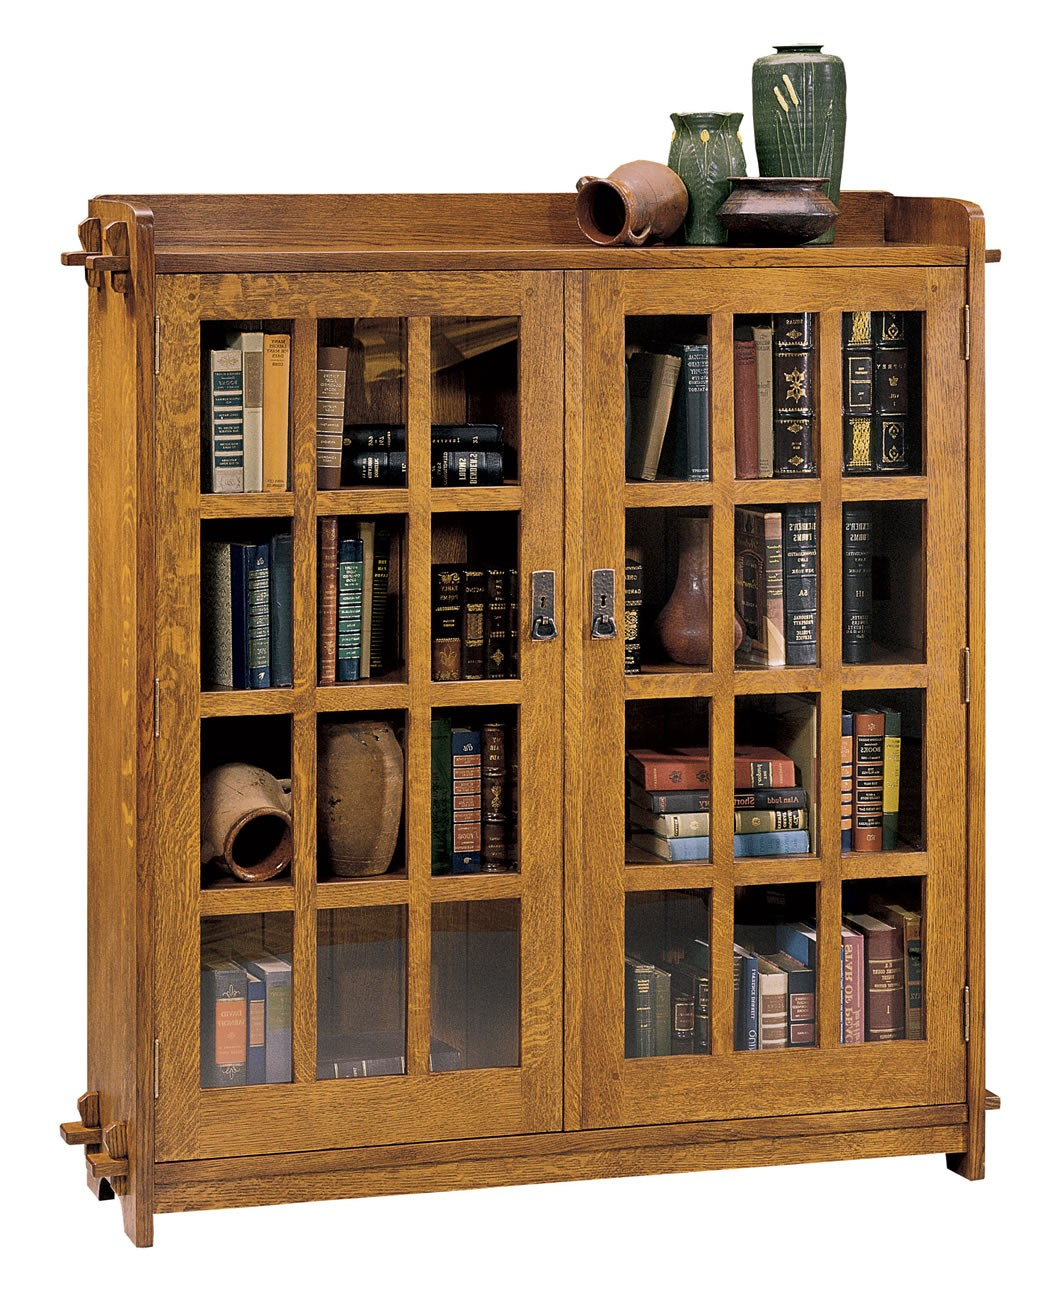 89-645-32 Double Bookcase w/Glass Doors